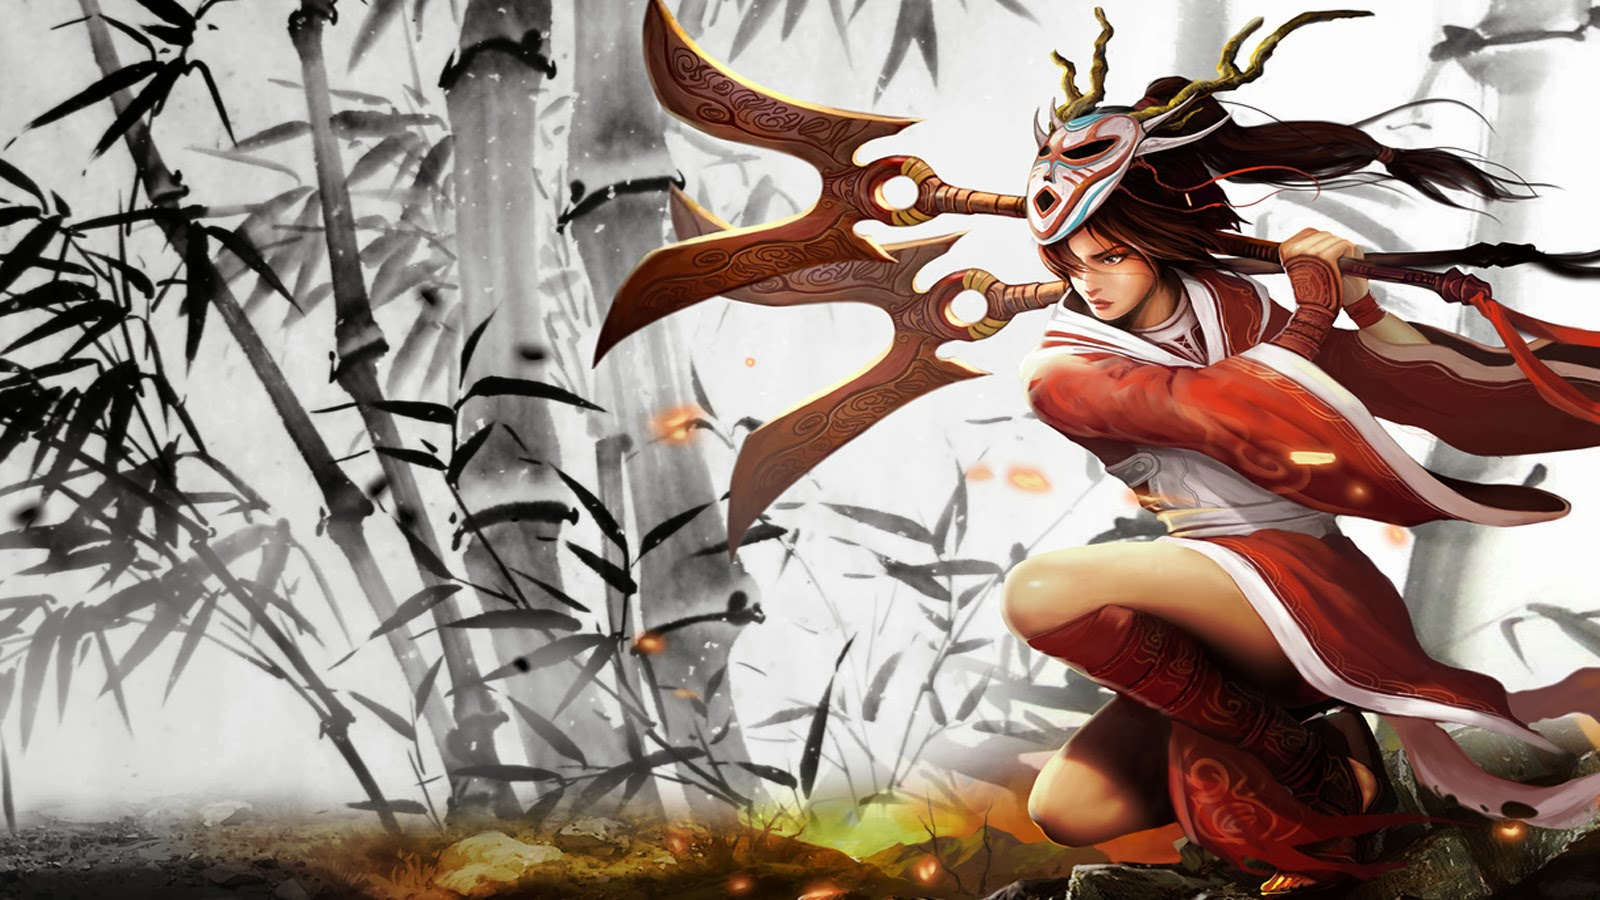 Akali League Of Legends Lol Girl Skin Splash Hd Wallpaper